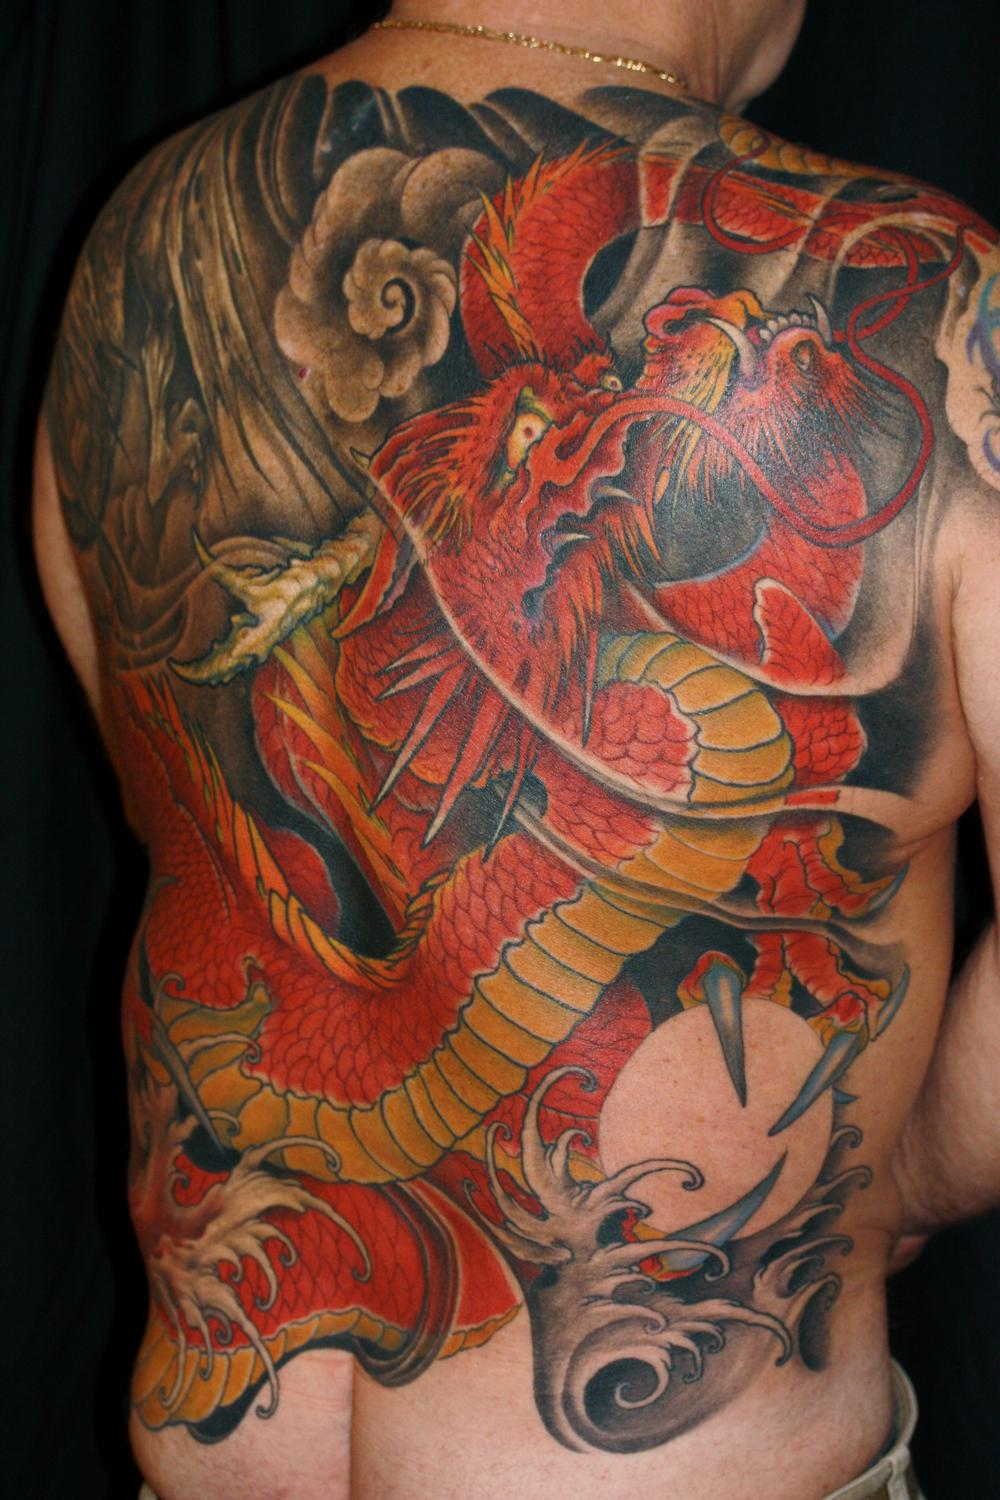 Jeff Gogue - japanese style dragon